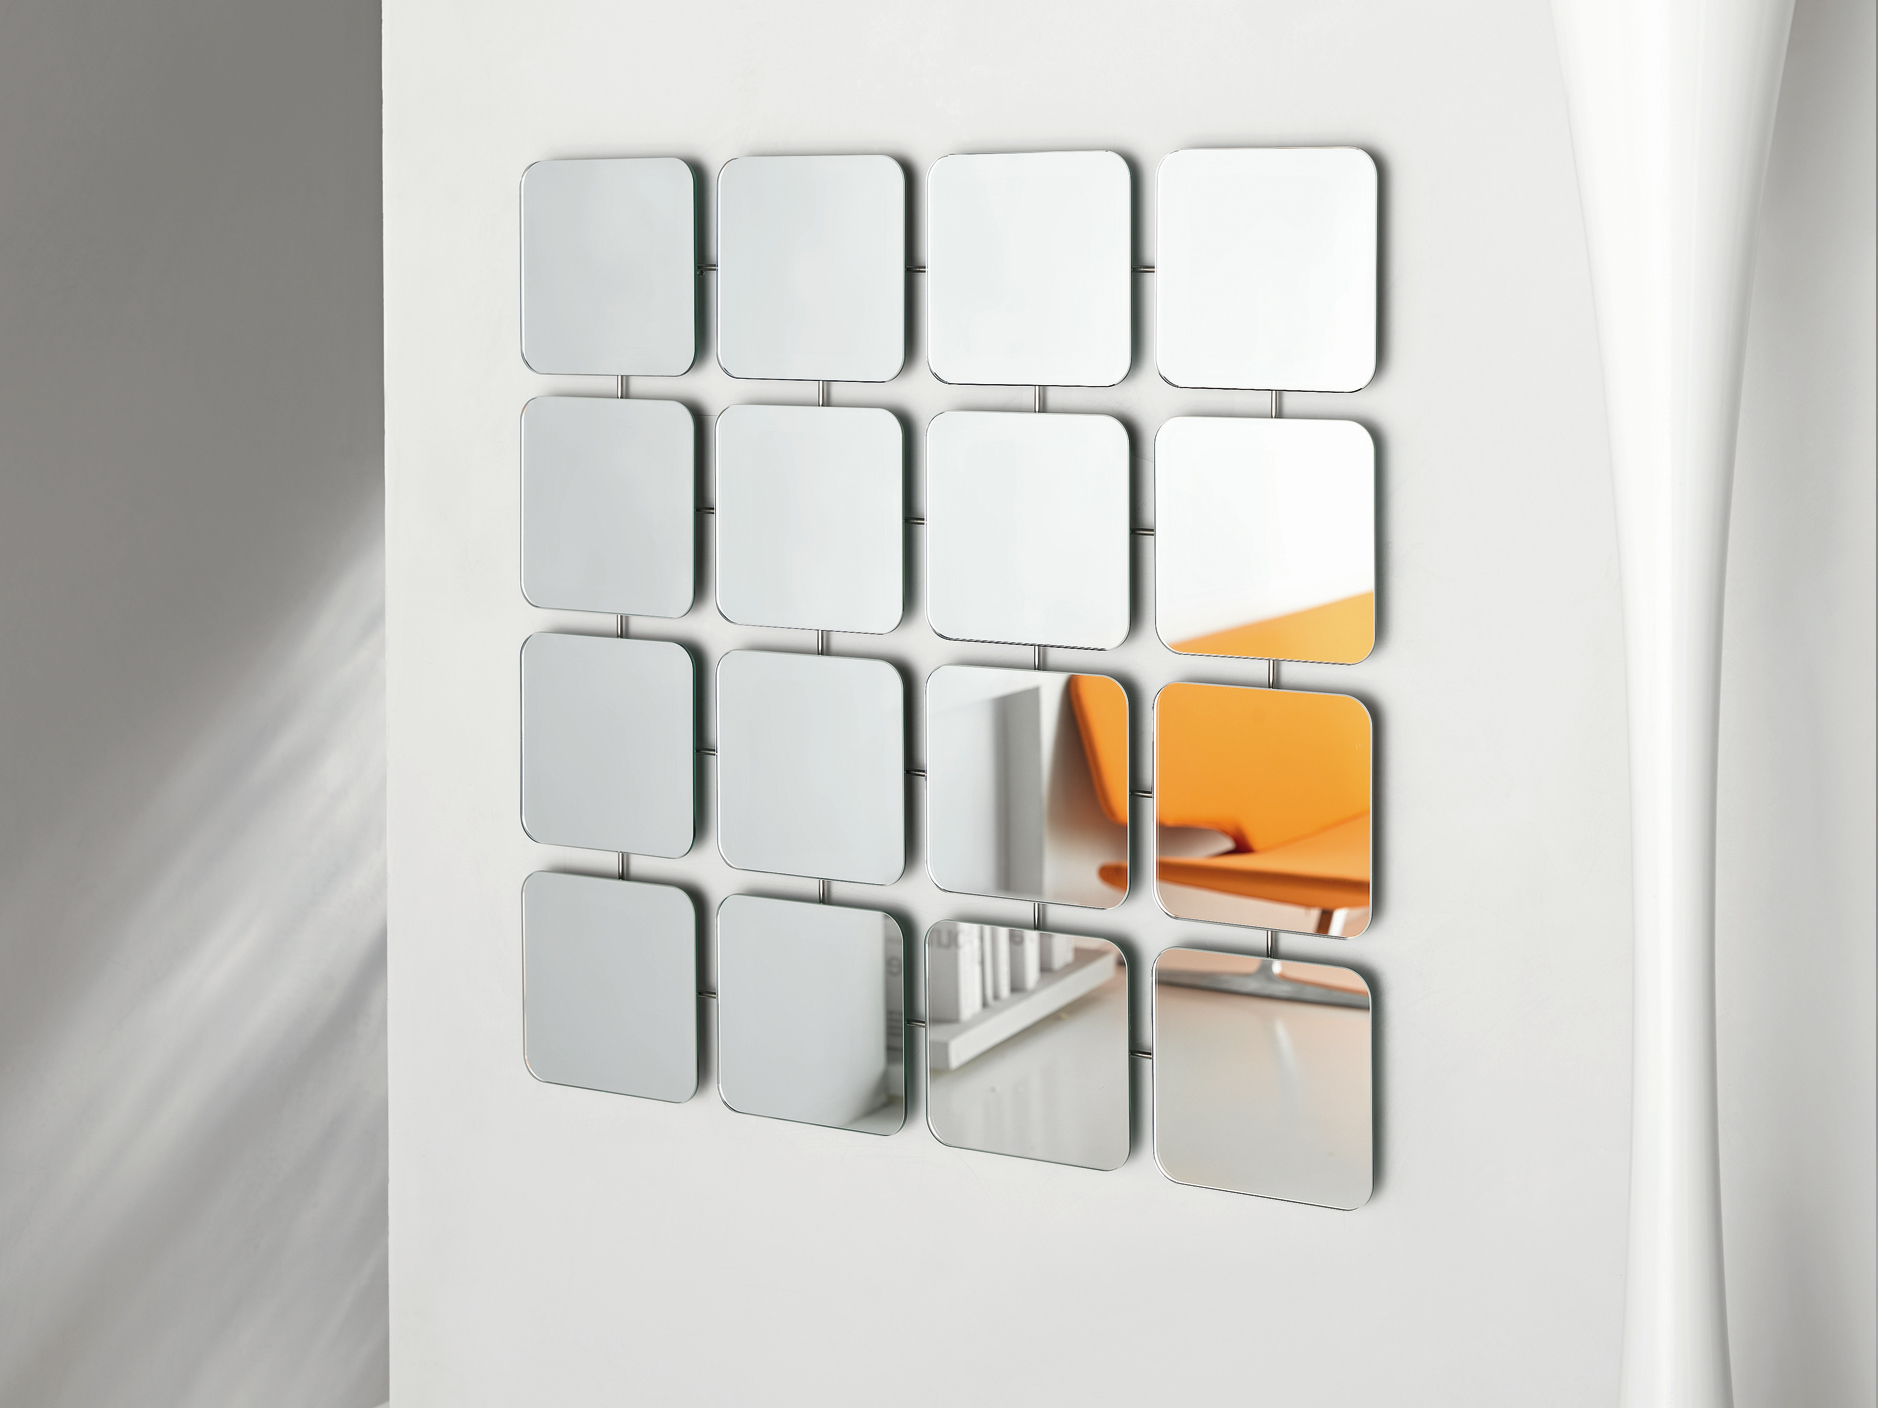 Miroir mural bungalows round square by t d tonelli design for Architecture t square